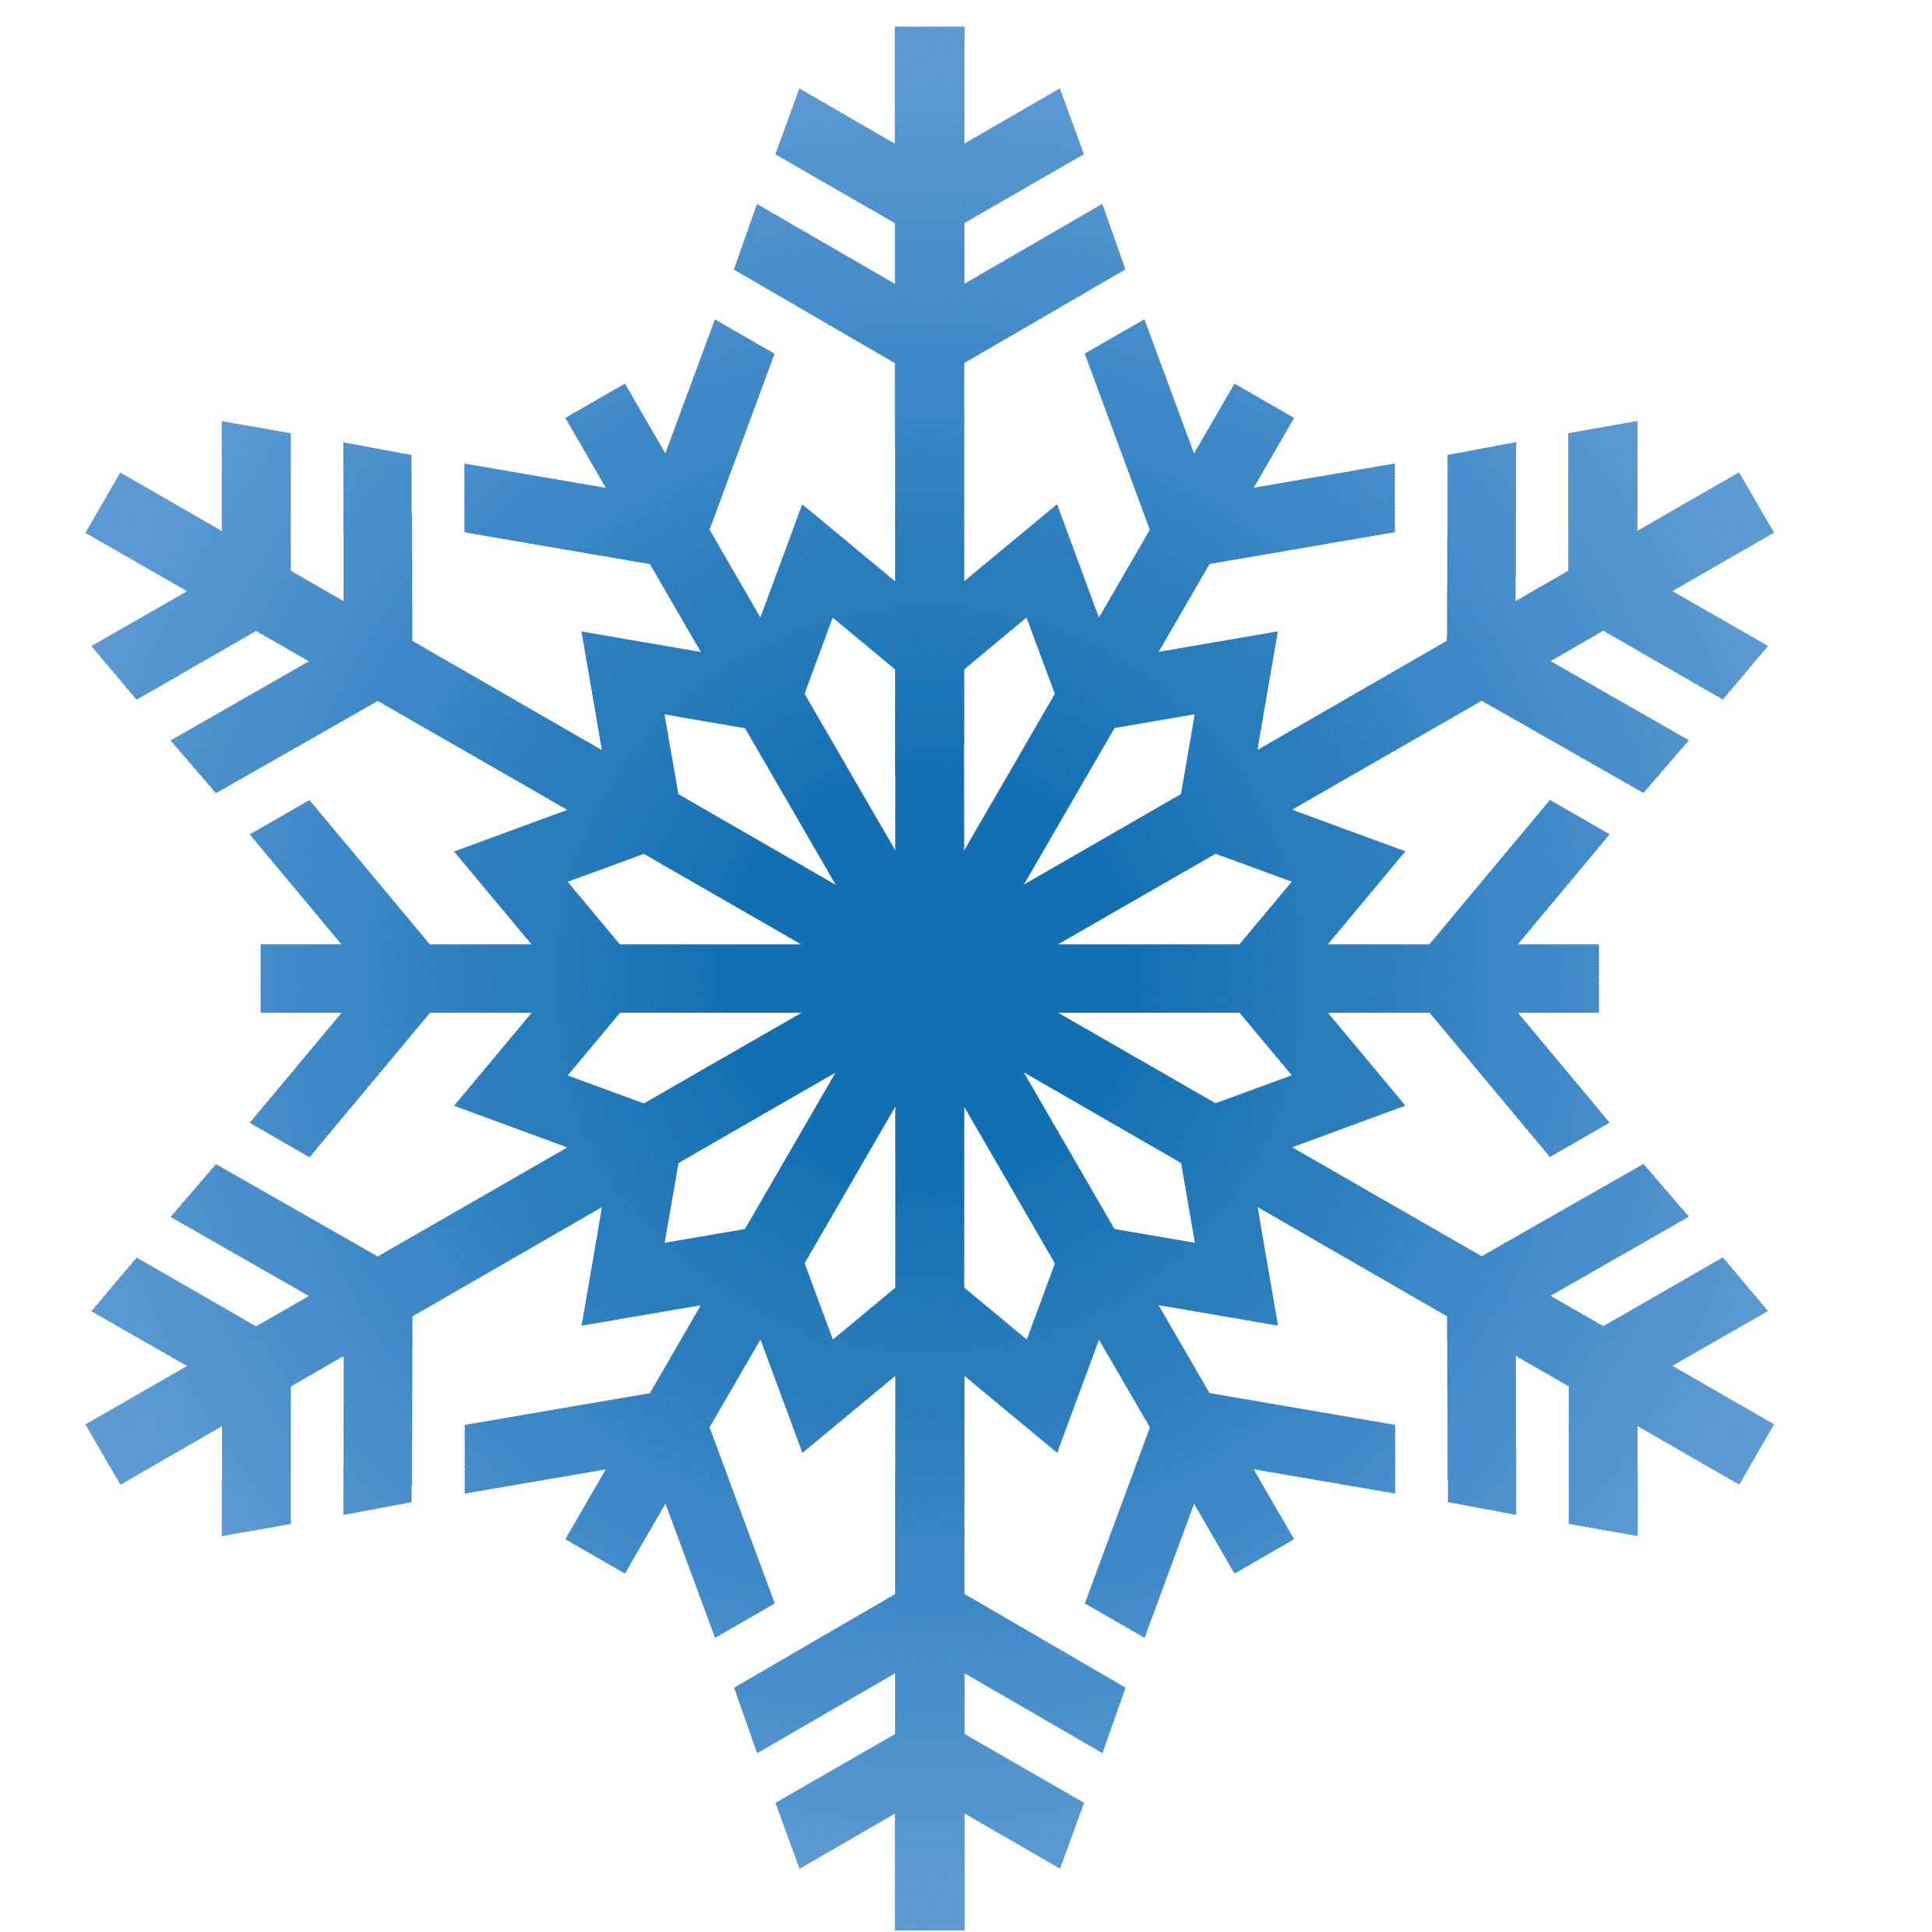 Skinny snowflake clipart clipart library download Snowflake Outline (68+) Desktop Backgrounds clipart library download